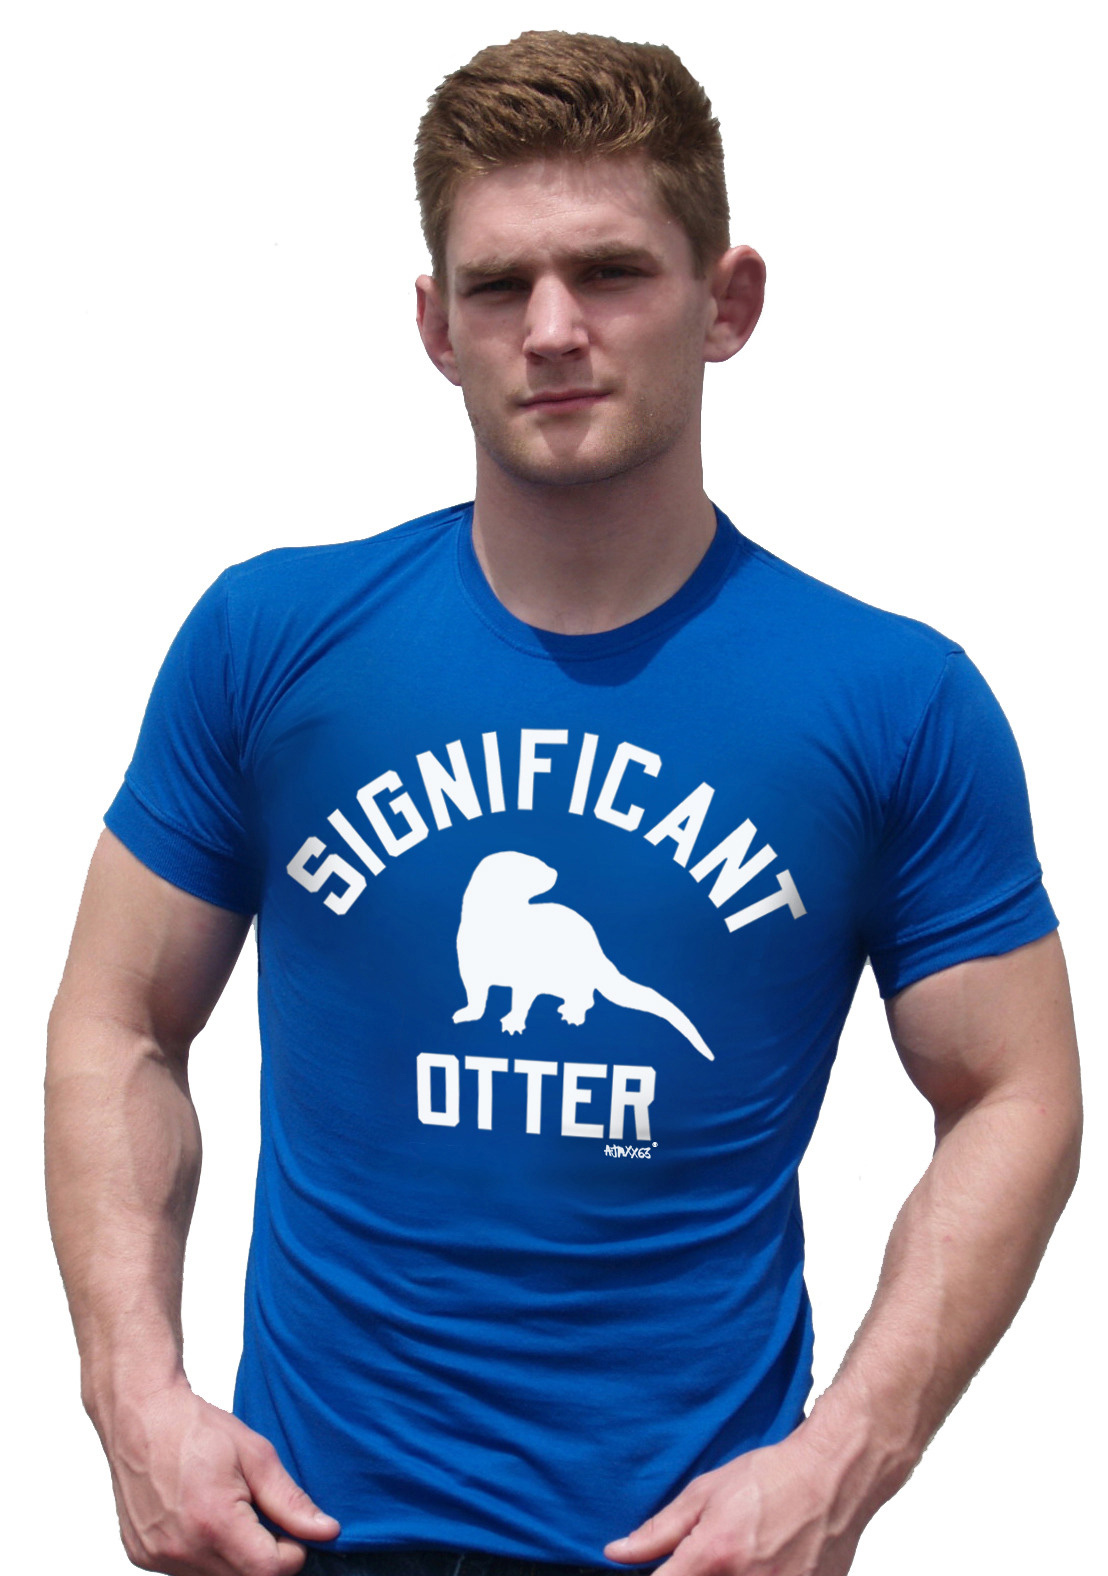 Ajaxx63 Athletic Significant Otter Shirt